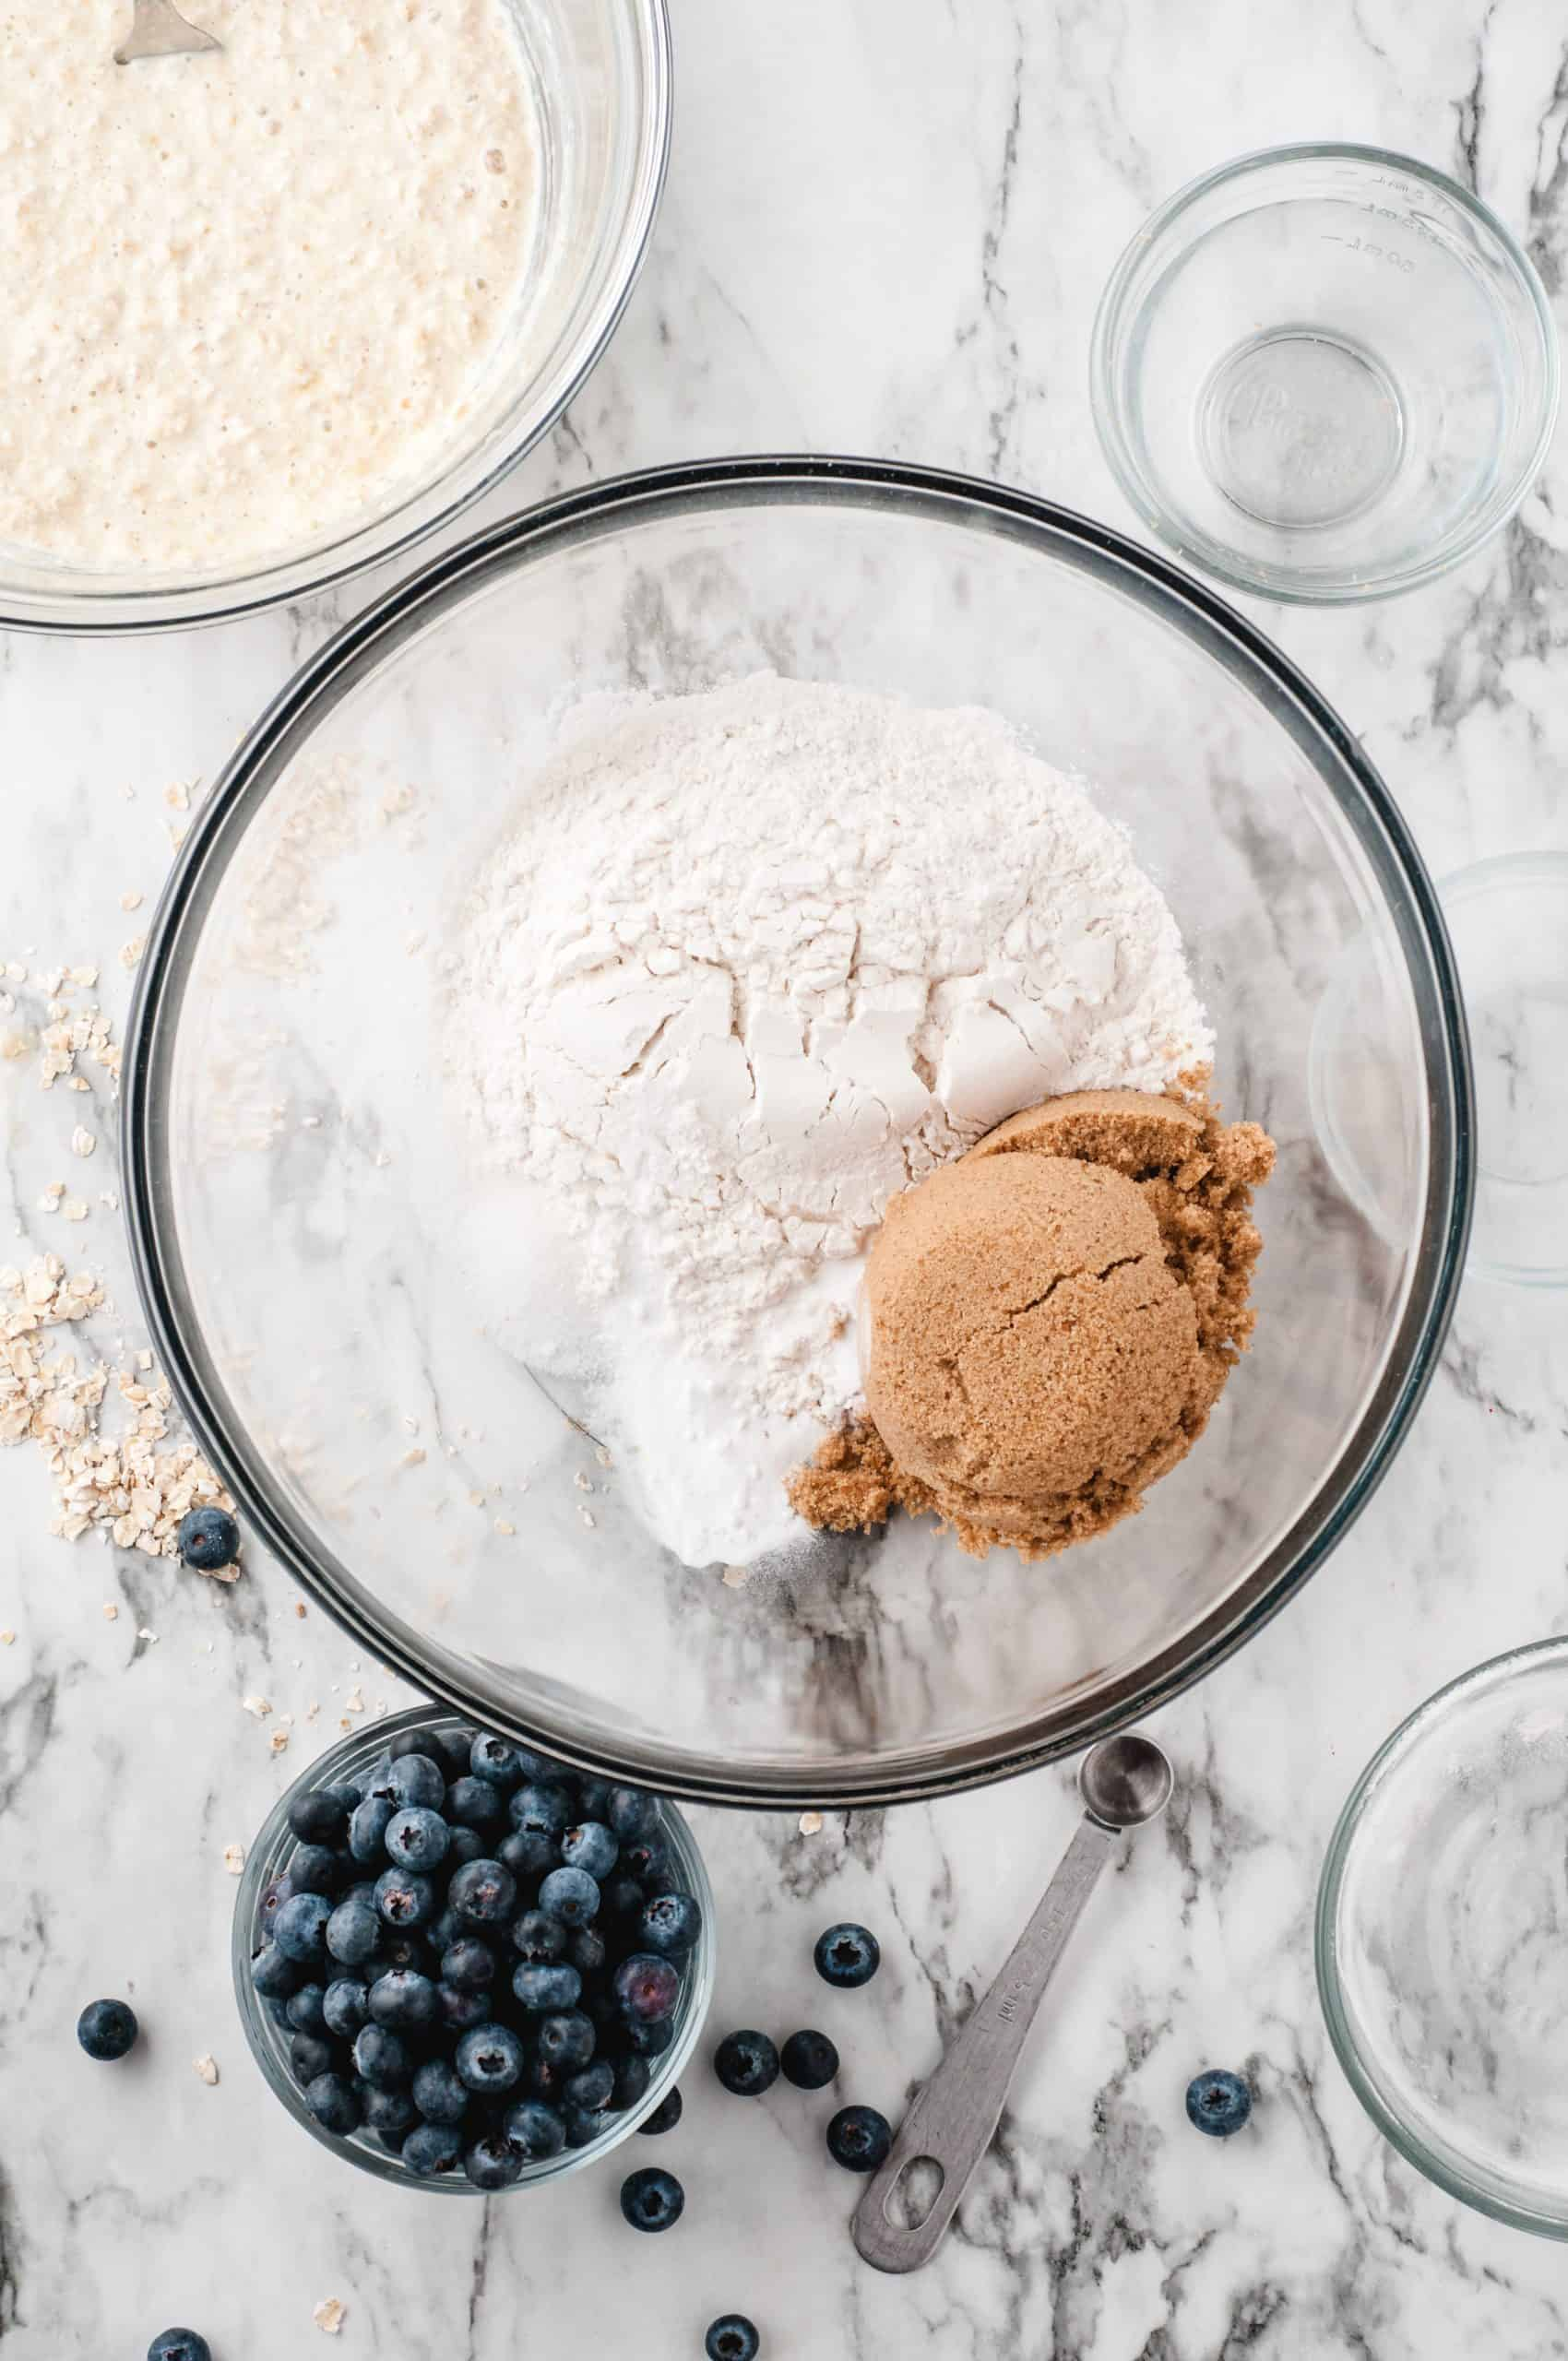 Flour and brown sugar in a glass bowl with blueberries on the side.